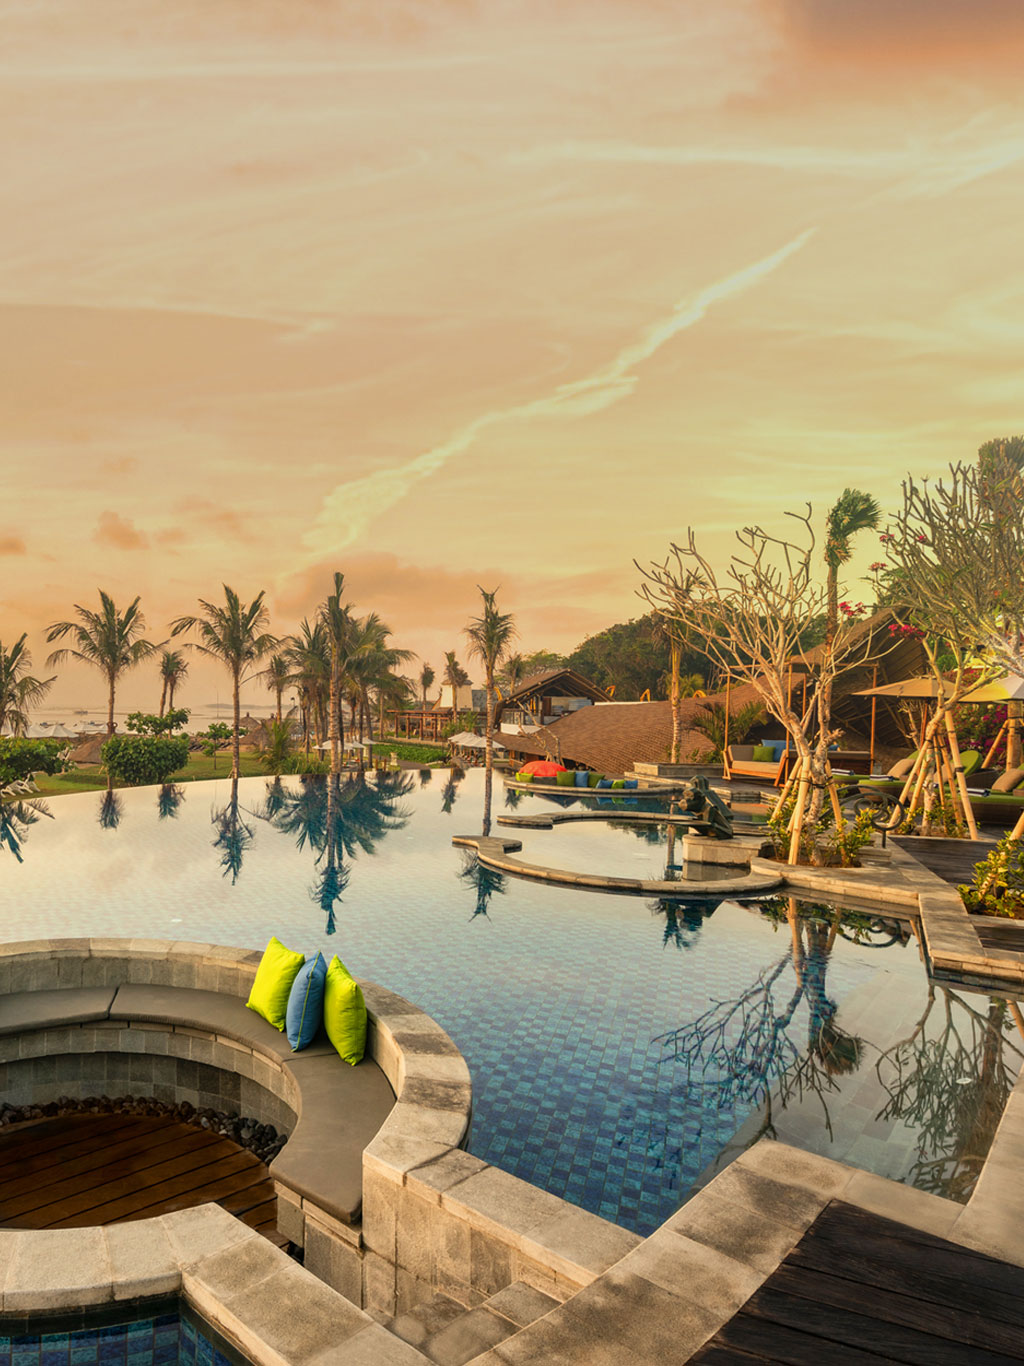 Bali Resort All Inclusive Grand Mirage Beachfront Resorts Paket Watersports Tanjung Benoa Include Lunch Play Video Button